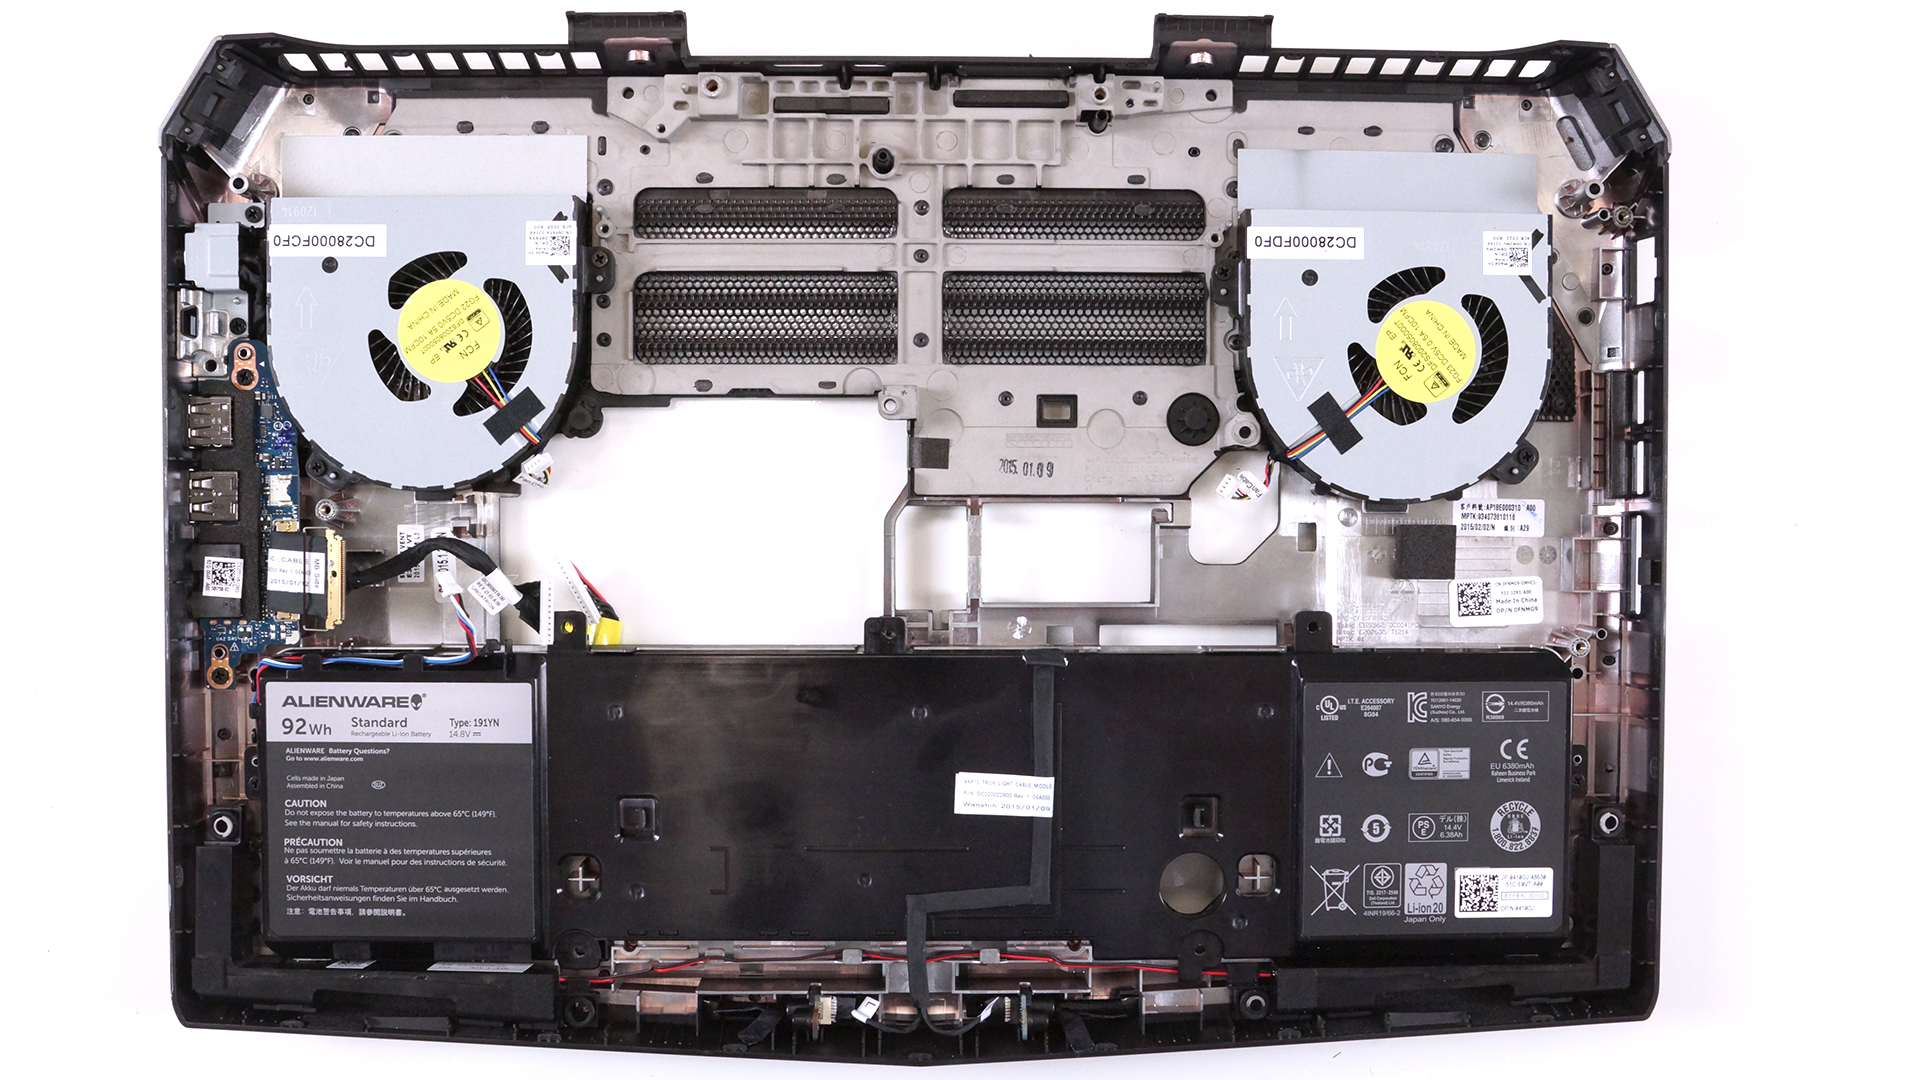 Inside Dell Alienware 15 – disassembly, internal photos and